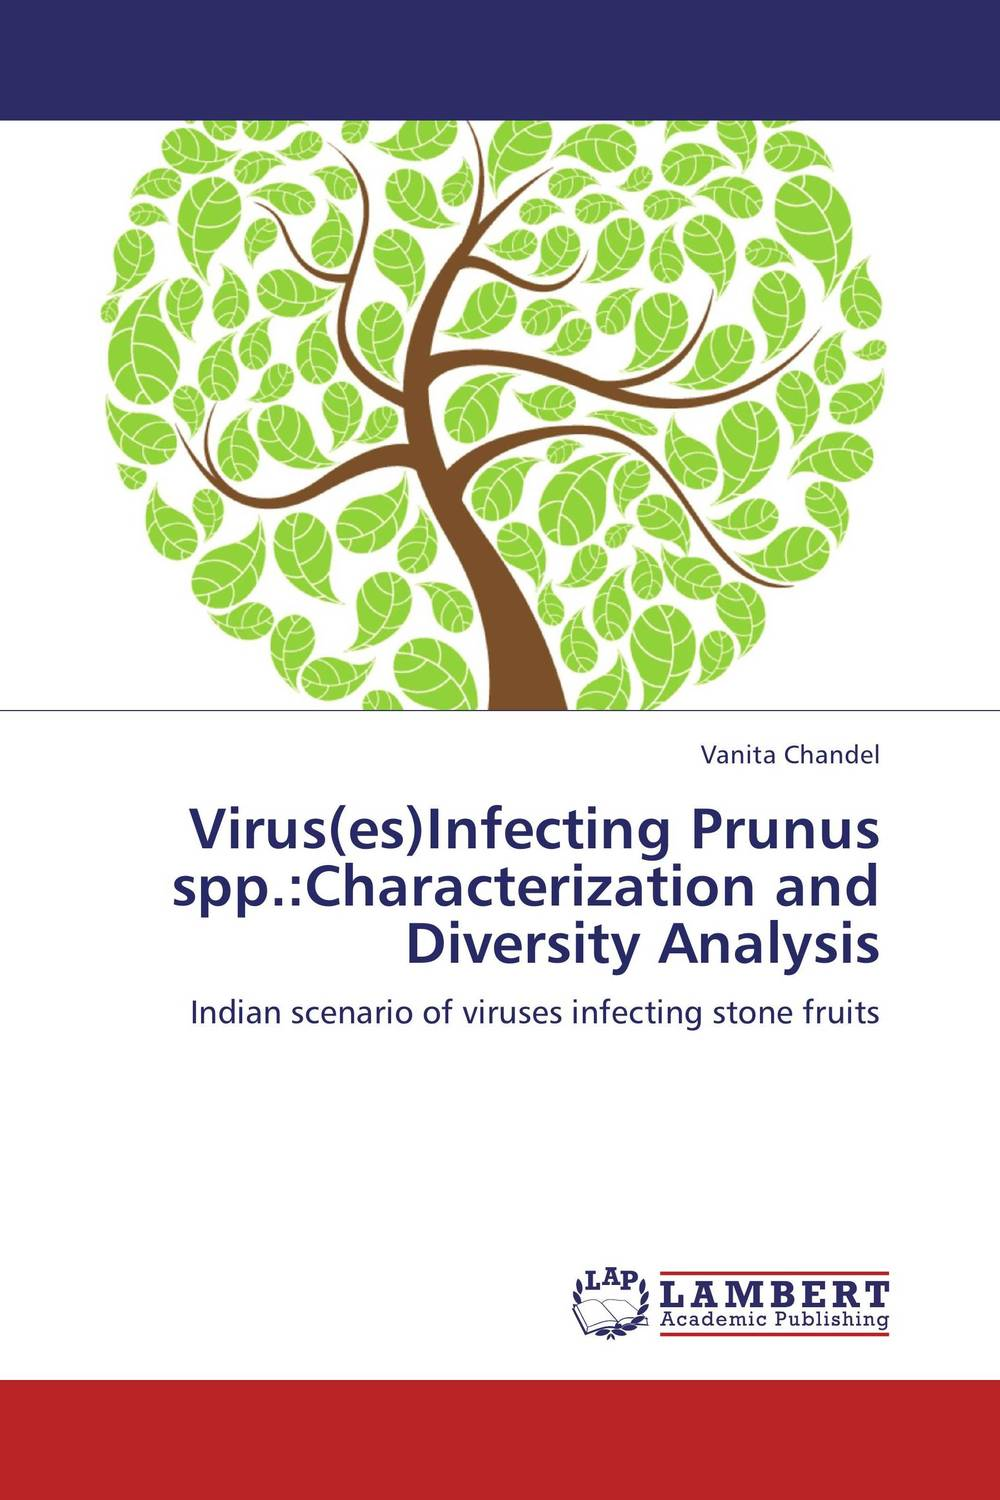 Virus(es)Infecting Prunus spp.:Characterization and Diversity Analysis jyoti yadav arvind kumar and lalit kumar molecular characterization of lactamase e coli and klebsiella spp